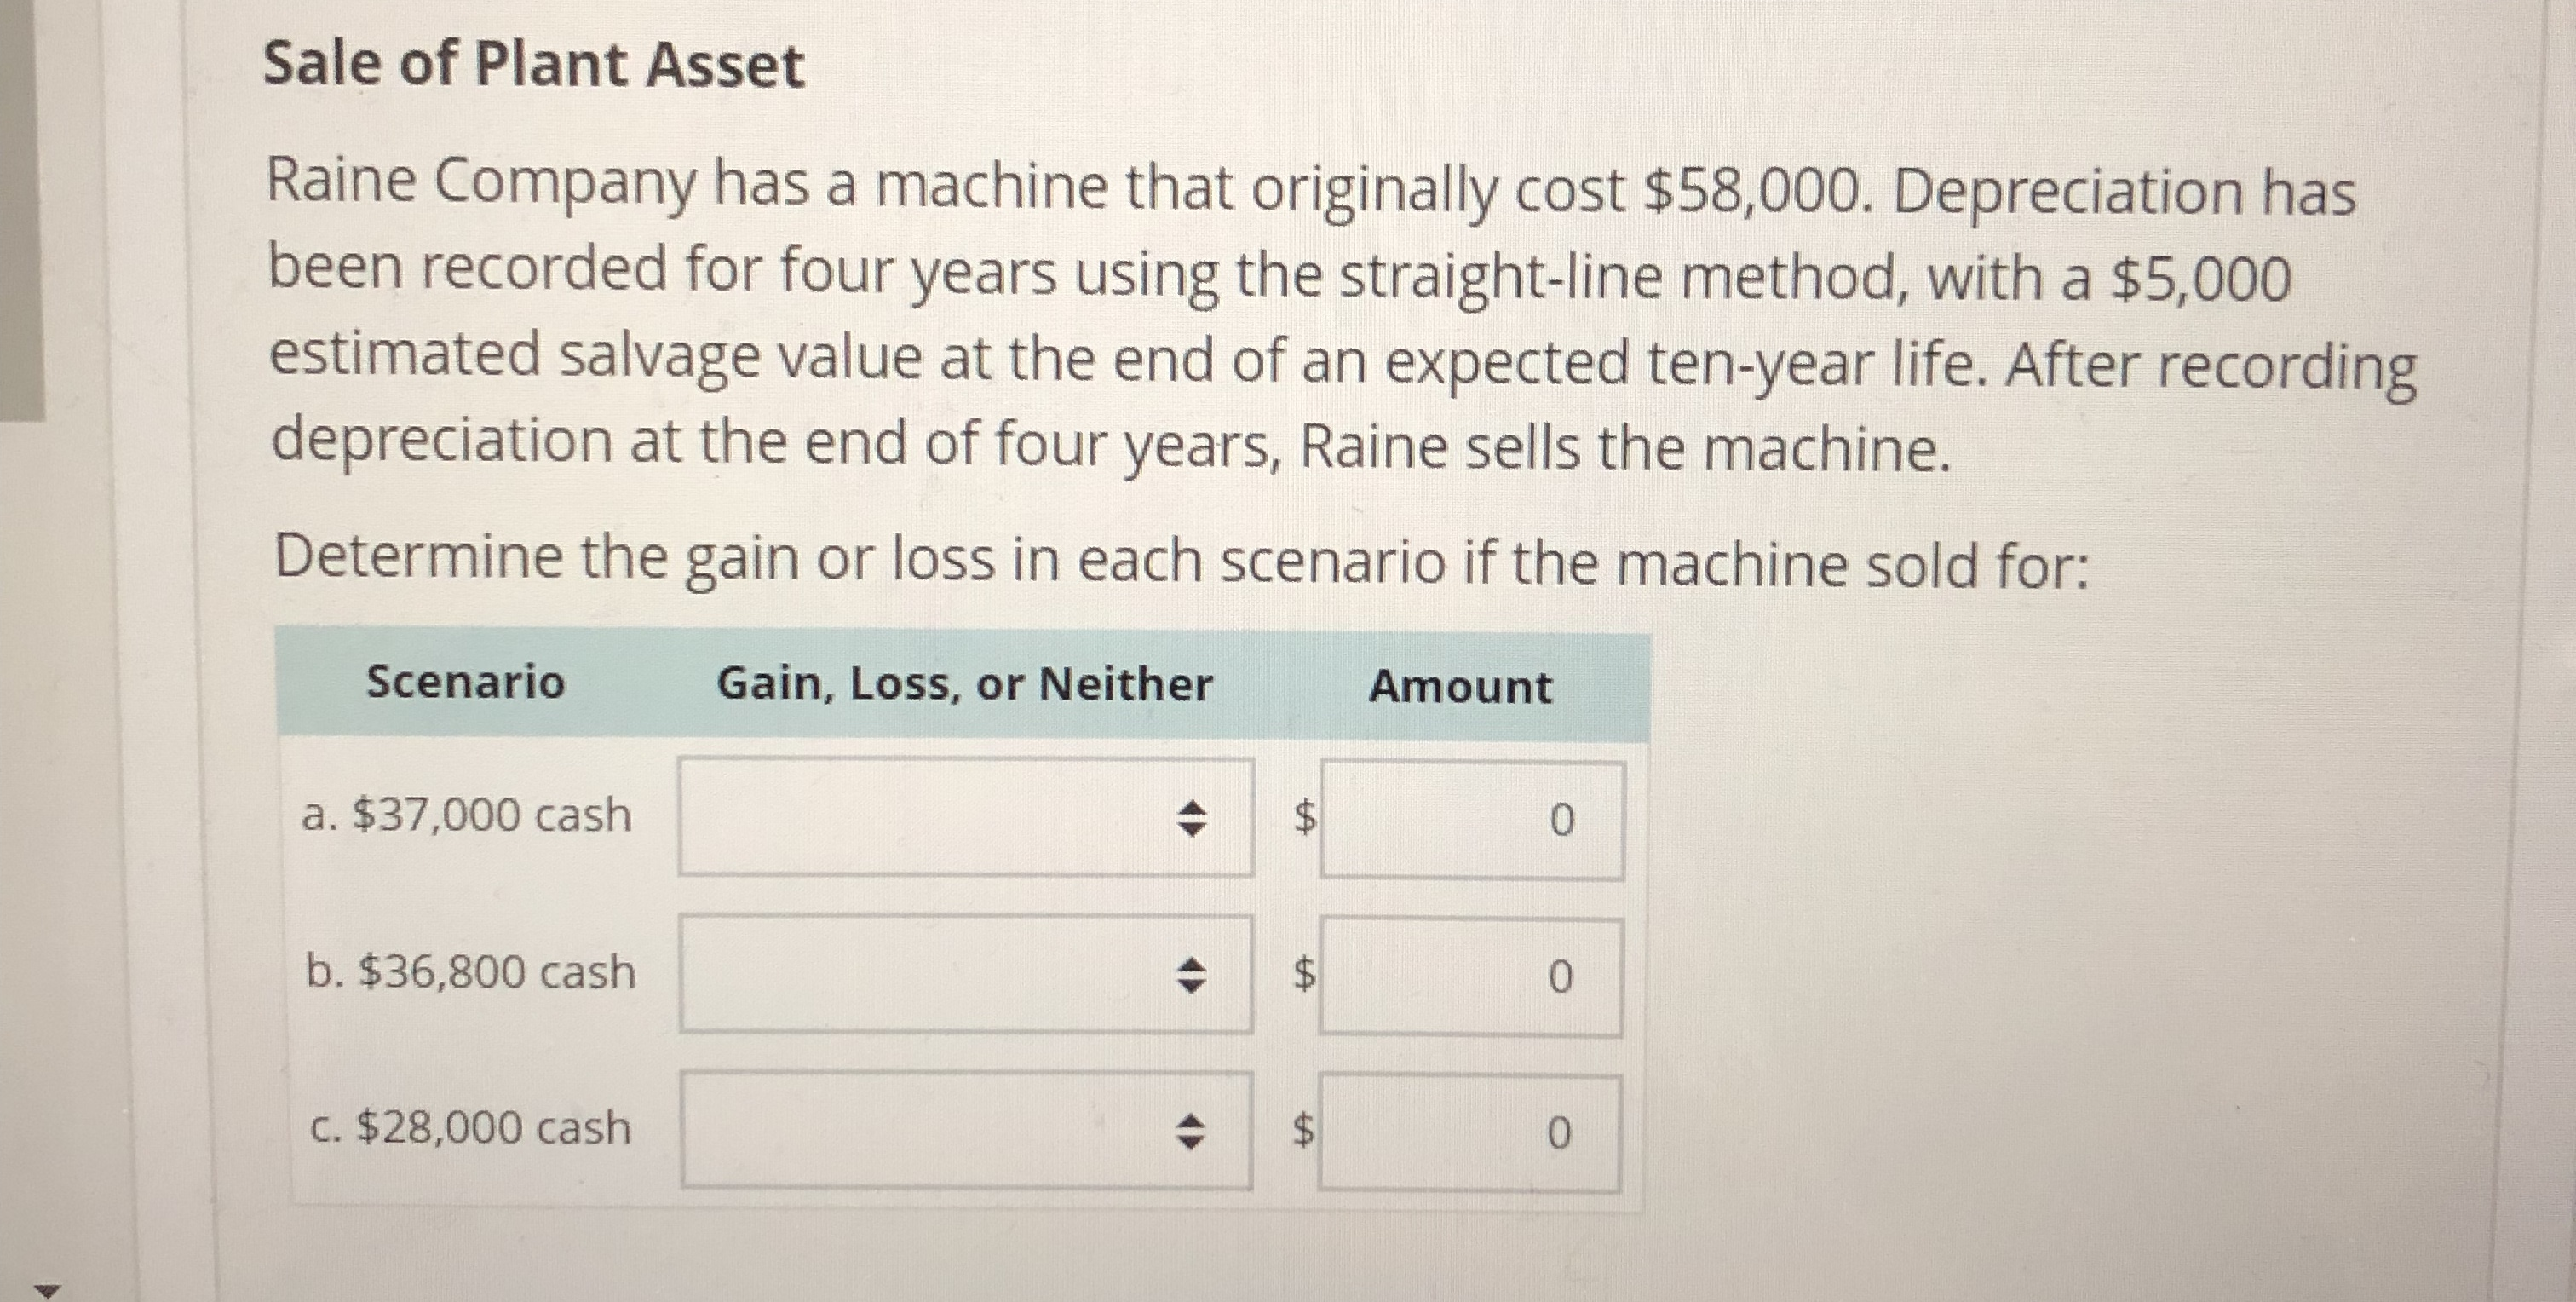 Sale of Plant Asset Raine Company has a machine that originally cost $58,000. Depreciation has been recorded for four years using the straight-line method, with a $5,000 estimated salvage value at the end of an expected ten-year life. After recording depreciation at the end of four years, Raine sells the machine. Determine the gain or loss in each scenario if the machine sold for: Scenario Gain, Loss, or Neither Amount a. $37,000 cash 0 b. $36,800 cash 0 c. $28,000 cash 0